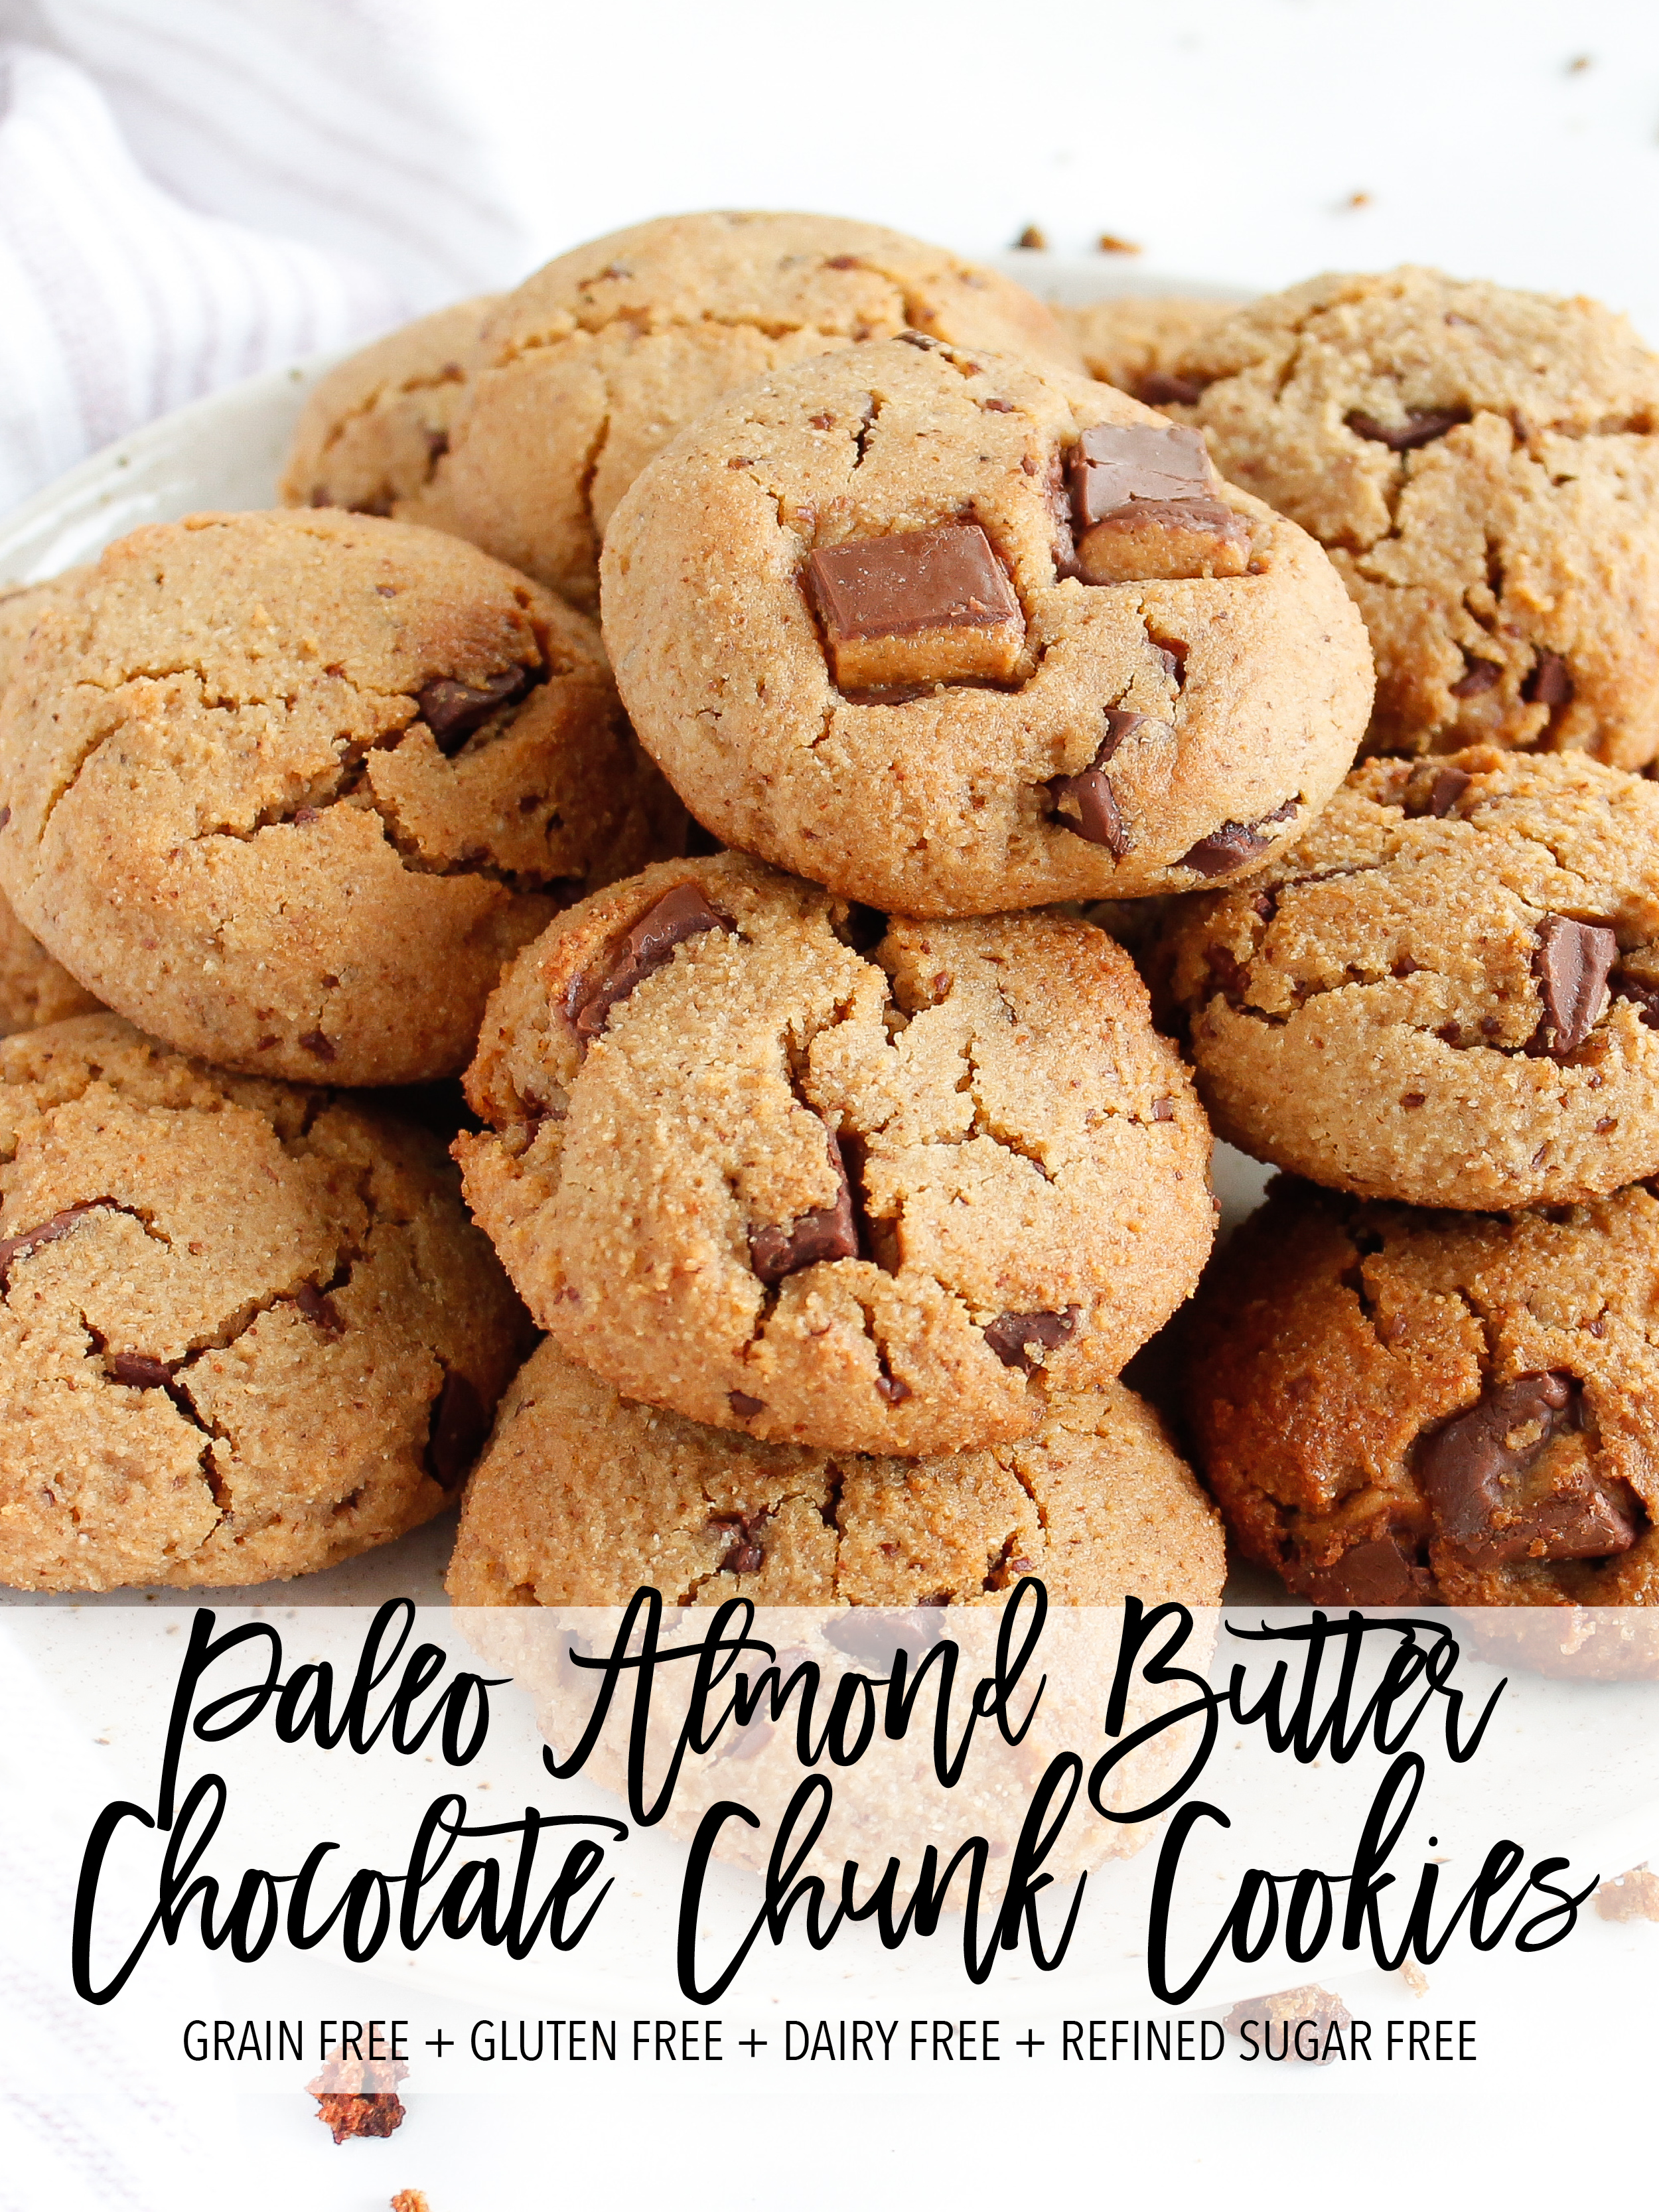 Paleo Almond Butter Chocolate Chunk Cookies || These paleo chocolate chunk cookies are grain free, dairy free and refined Sugar Free. They are the perfect healthy sweet treat to curb that sweet tooth and nourish your body! #paleocookies #refinedsugarfree #refinedsugarfreecookies